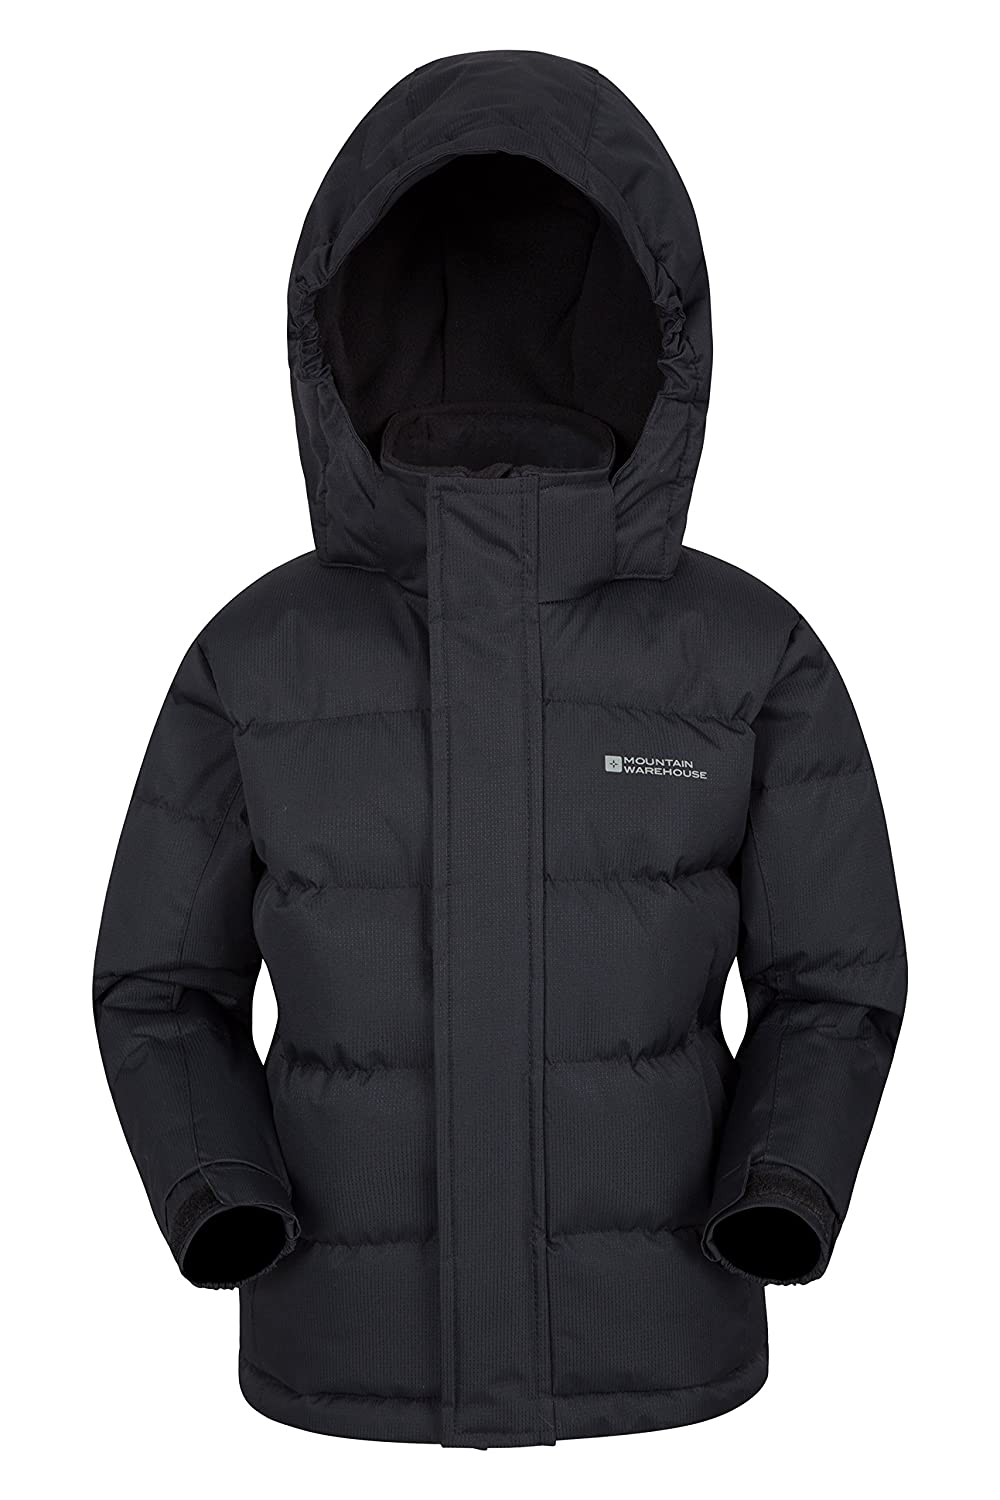 7cea1f573 Mountain Warehouse Snow Youth Padded Kids Jacket - Water Resistant ...